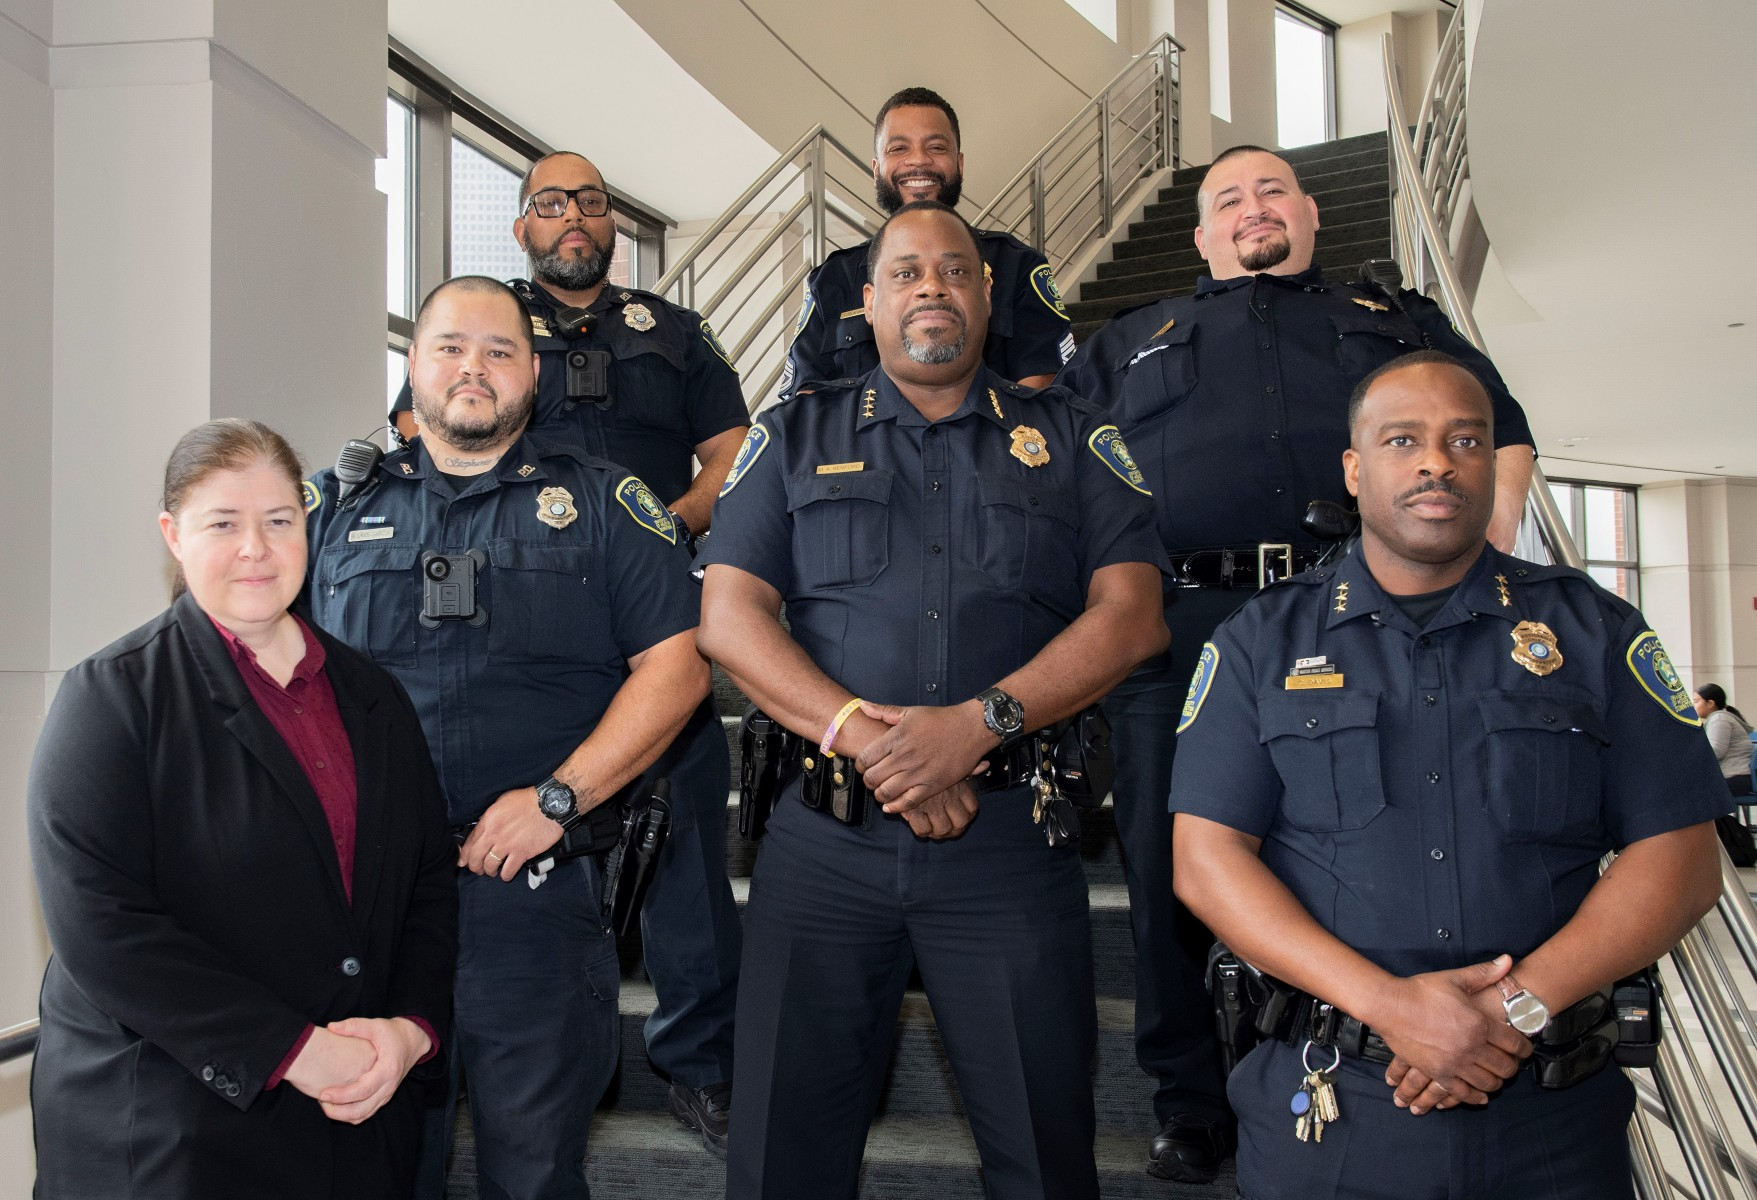 Citizens Police Academy Instructors